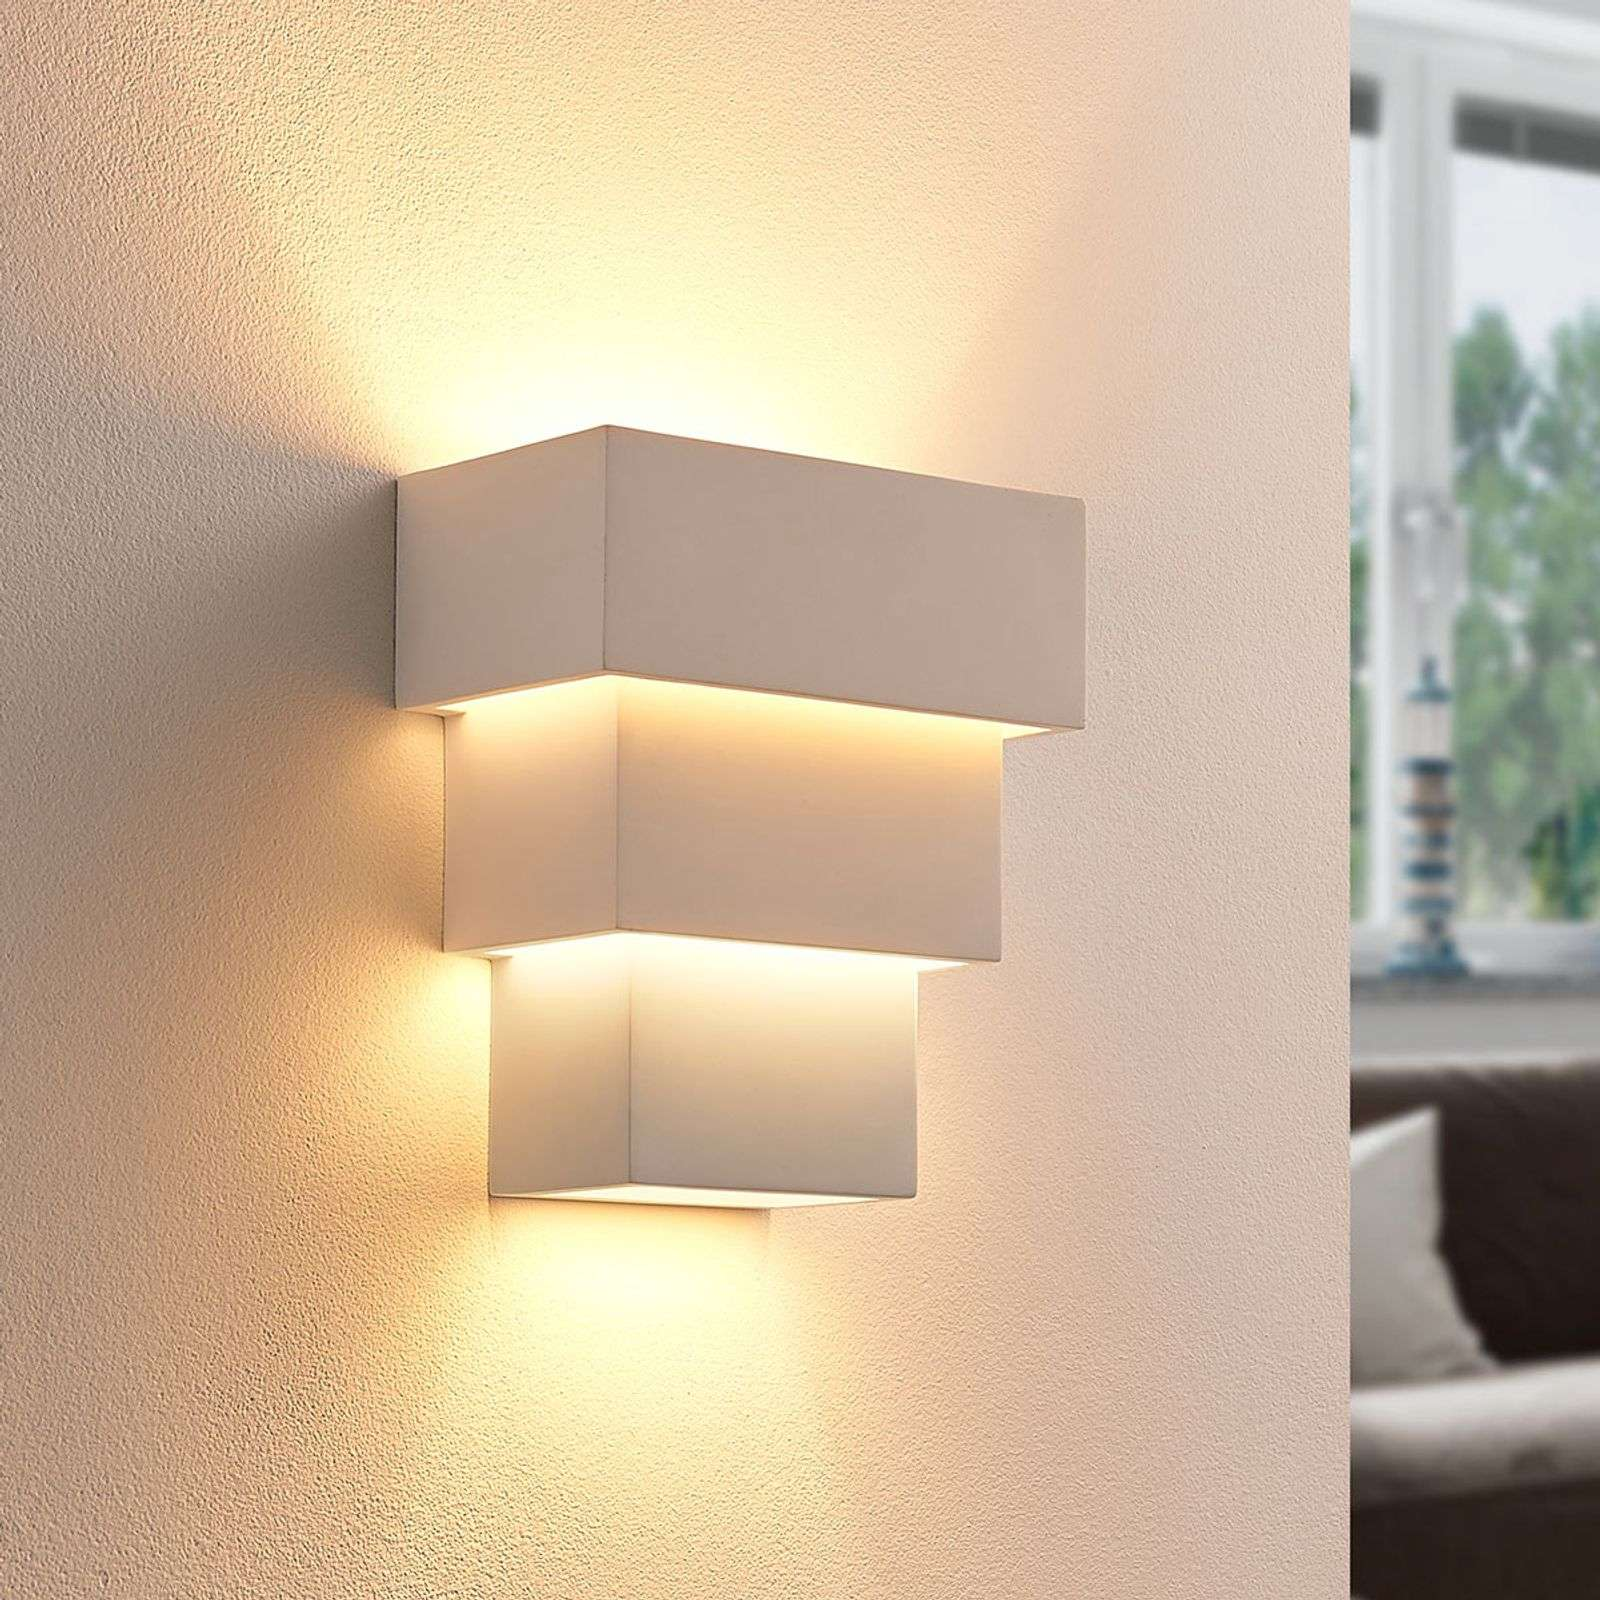 Antonella - efficace applique LED di gesso